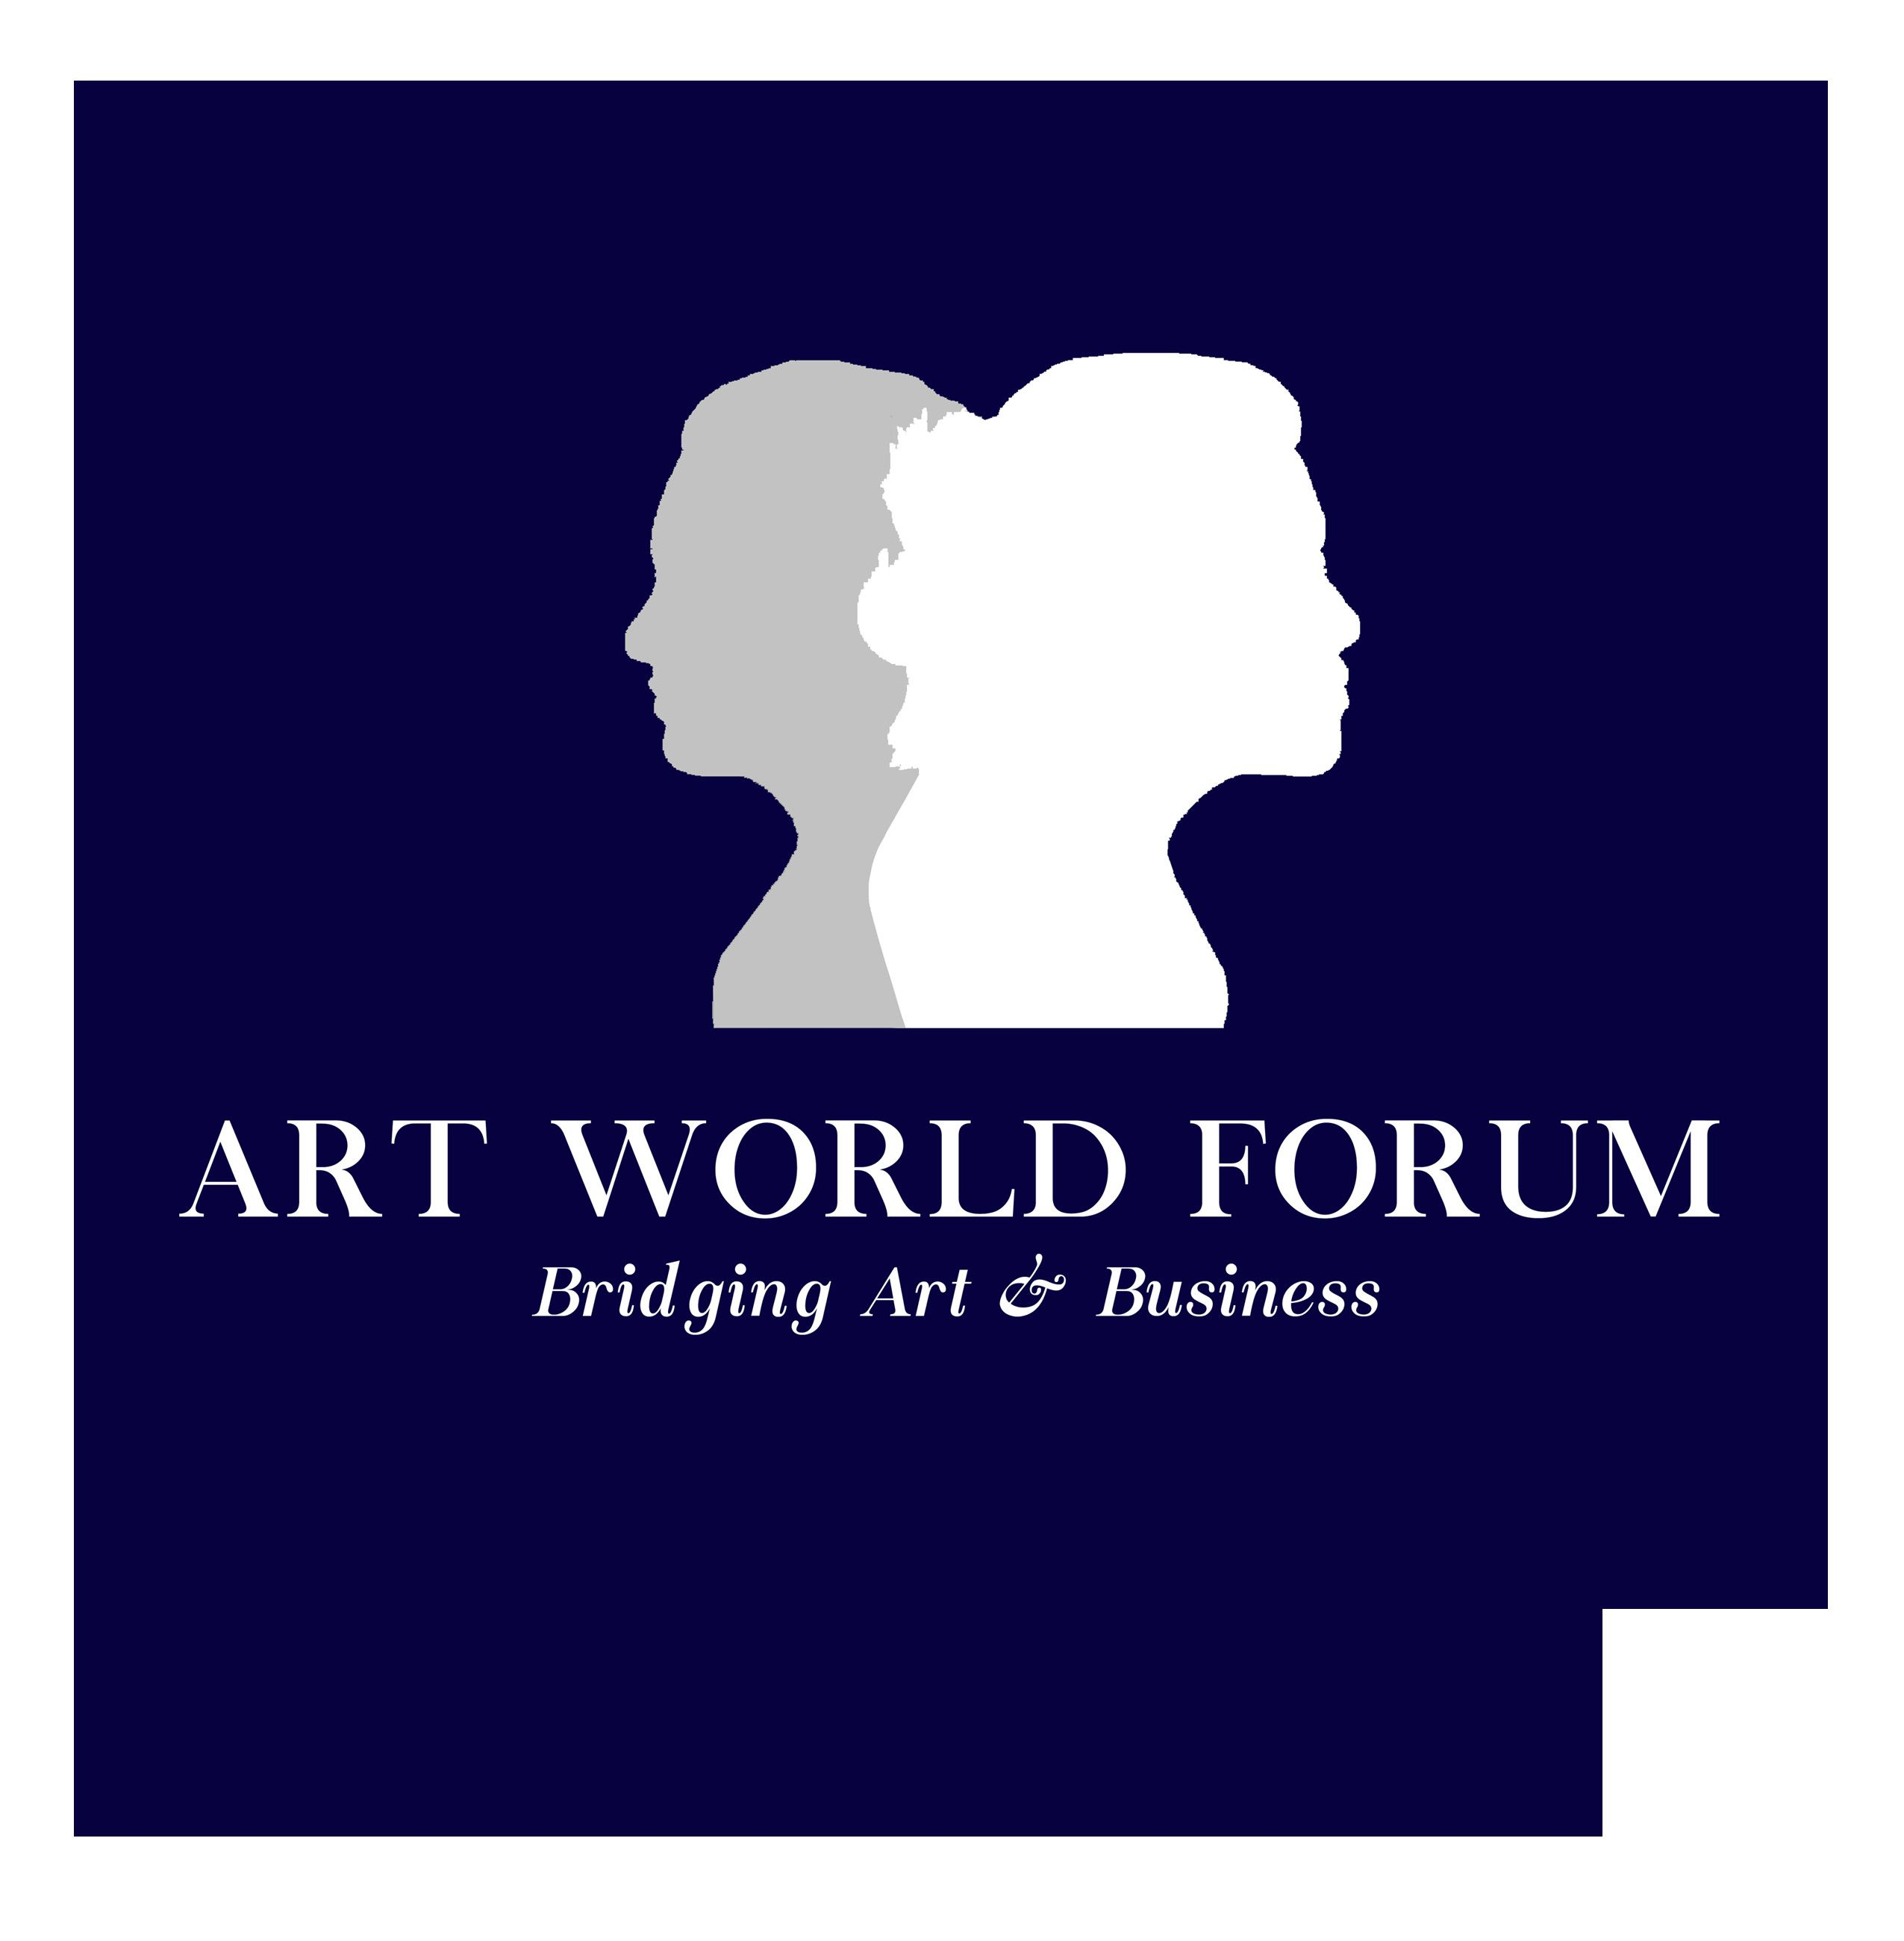 Art World Forum